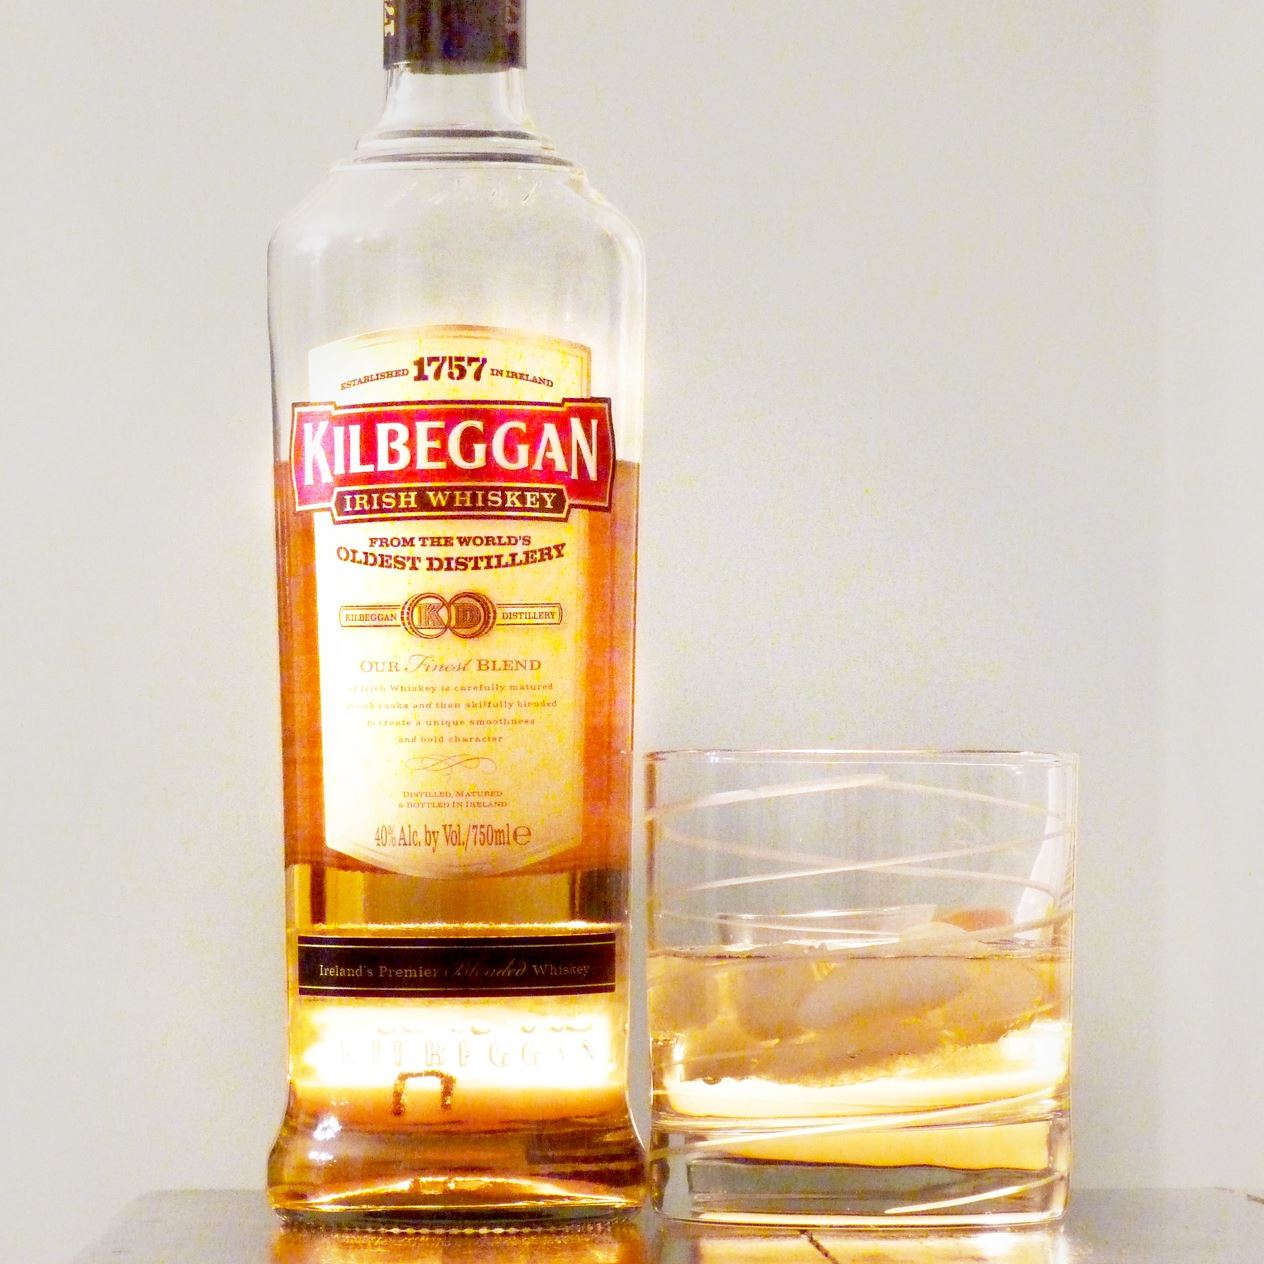 Kilbeggan Irish Whiskey Kilbeggan Irish Whiskey